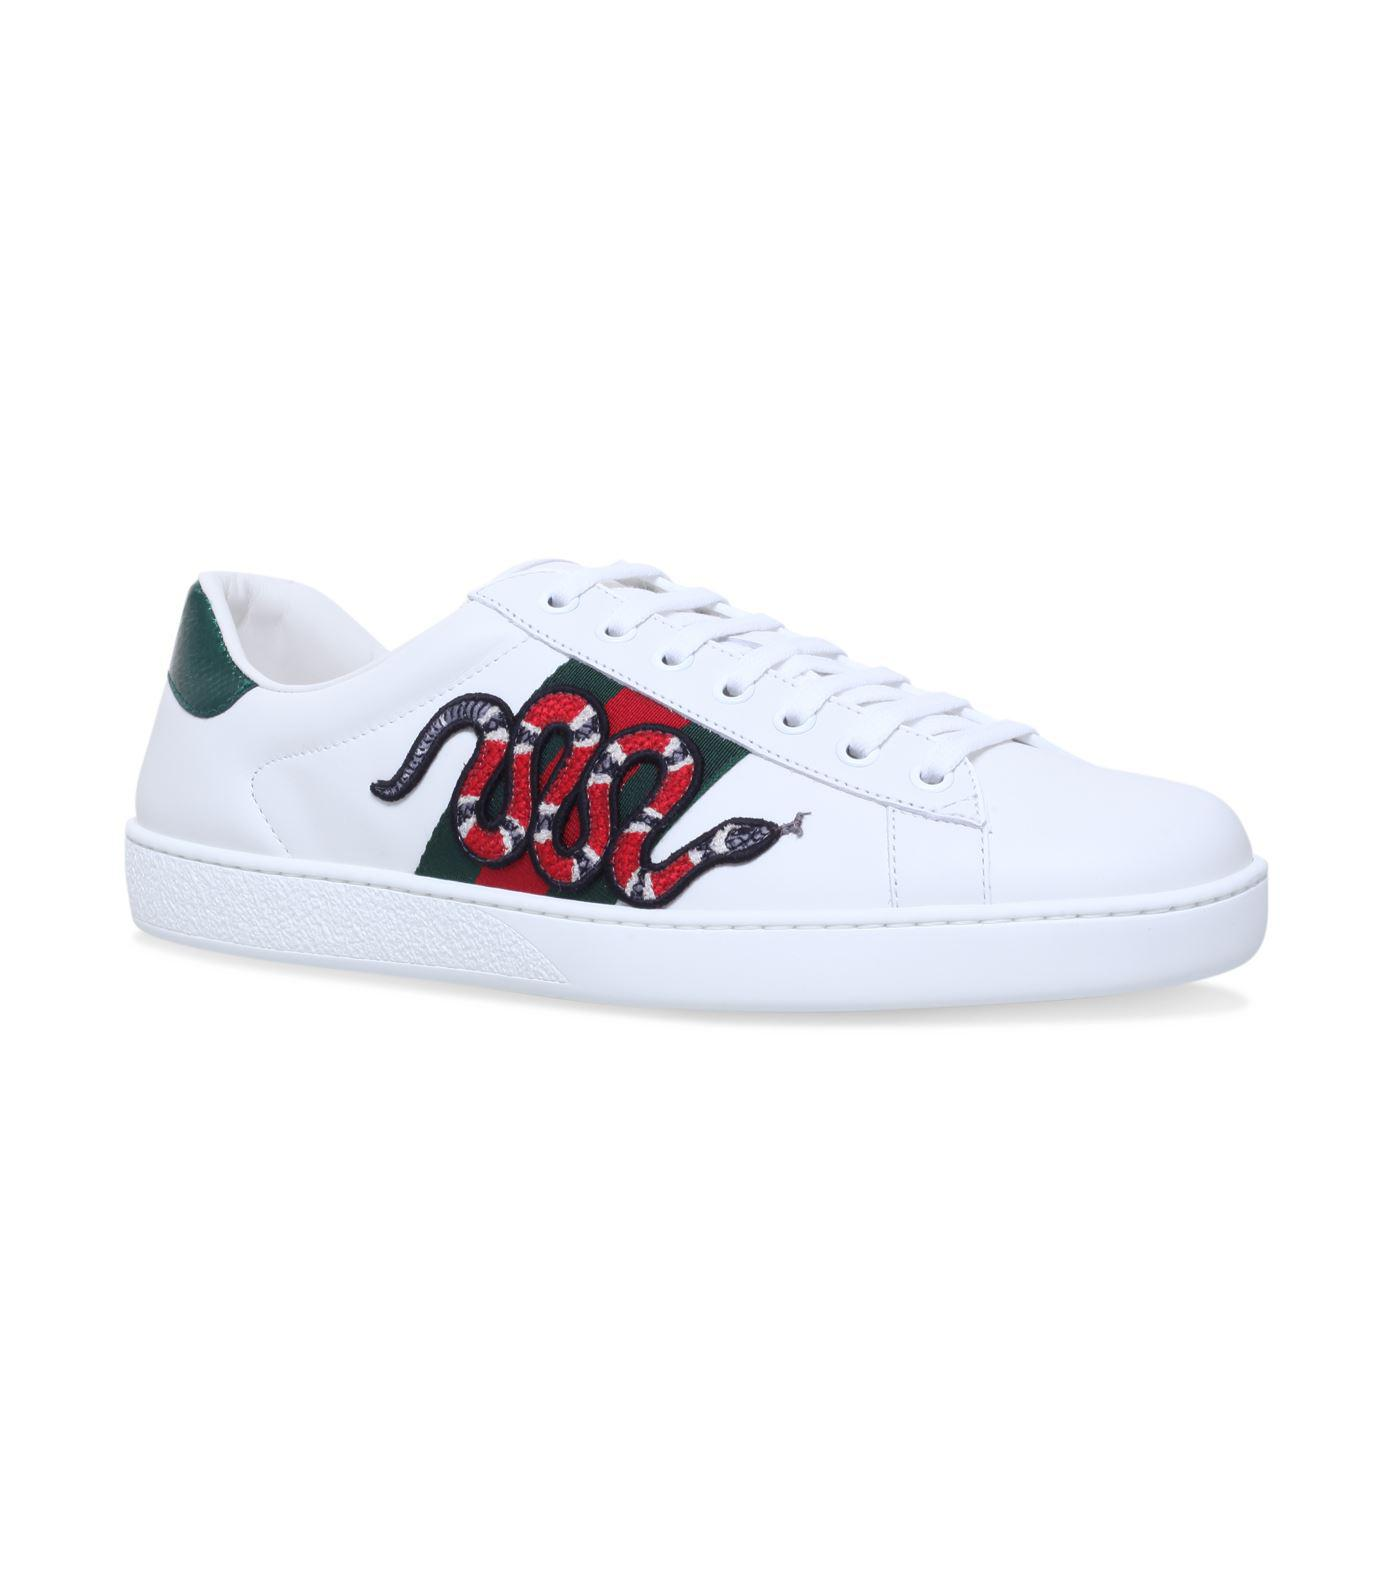 ce9c6085e74 Gucci Appliqu New Ace Sneakers in White for Men - Lyst